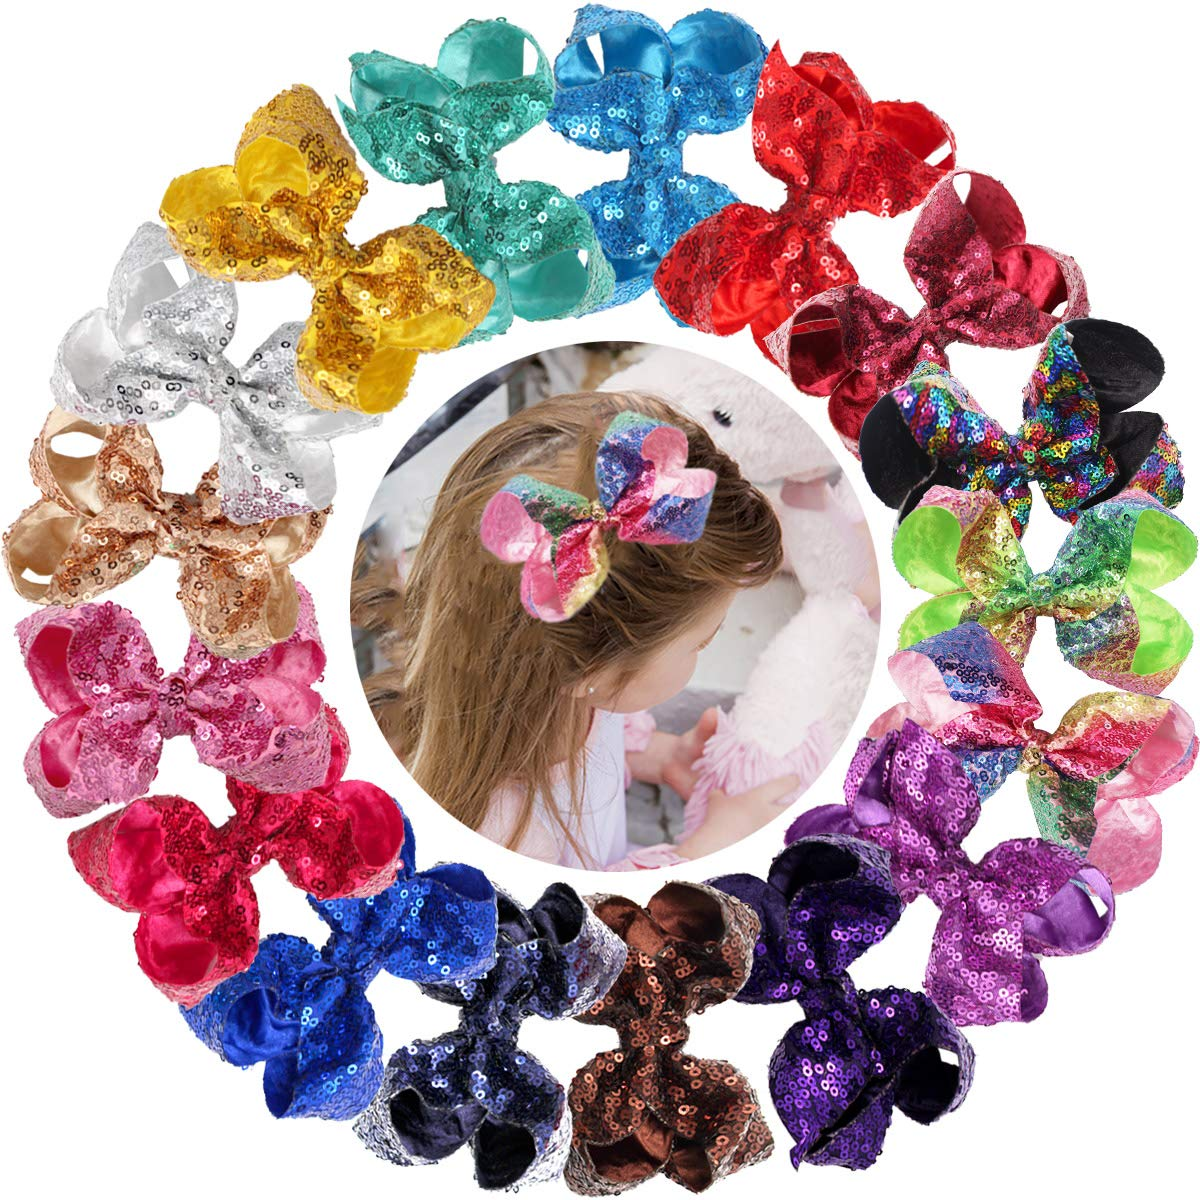 18PCS Max 50% OFF Max 71% OFF Baby Girls 4Inch Hair Glitter Wit Sparkly Sequin Bows